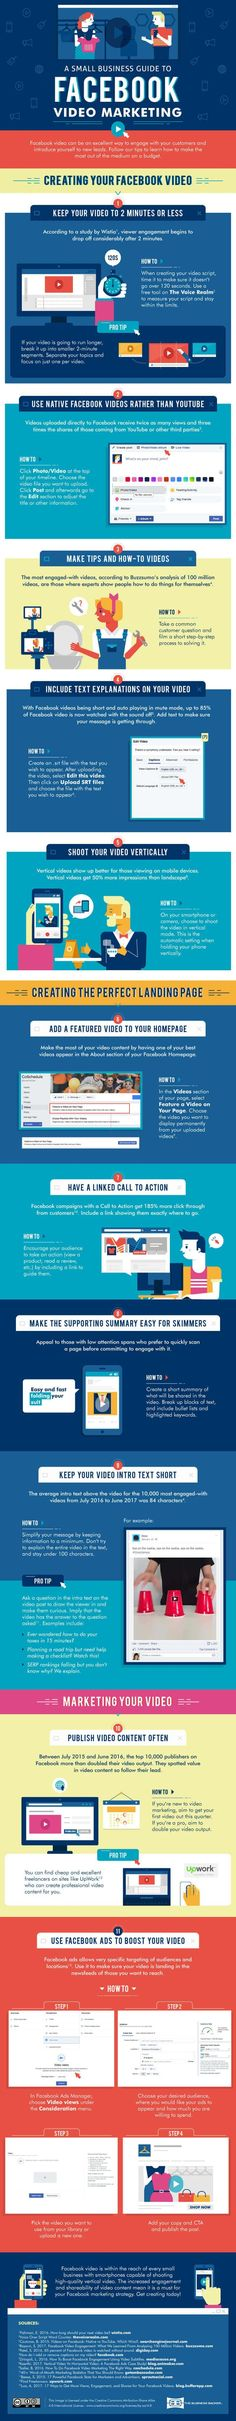 Top Tips to Create Facebook Videos to Market Your Business #Infographic